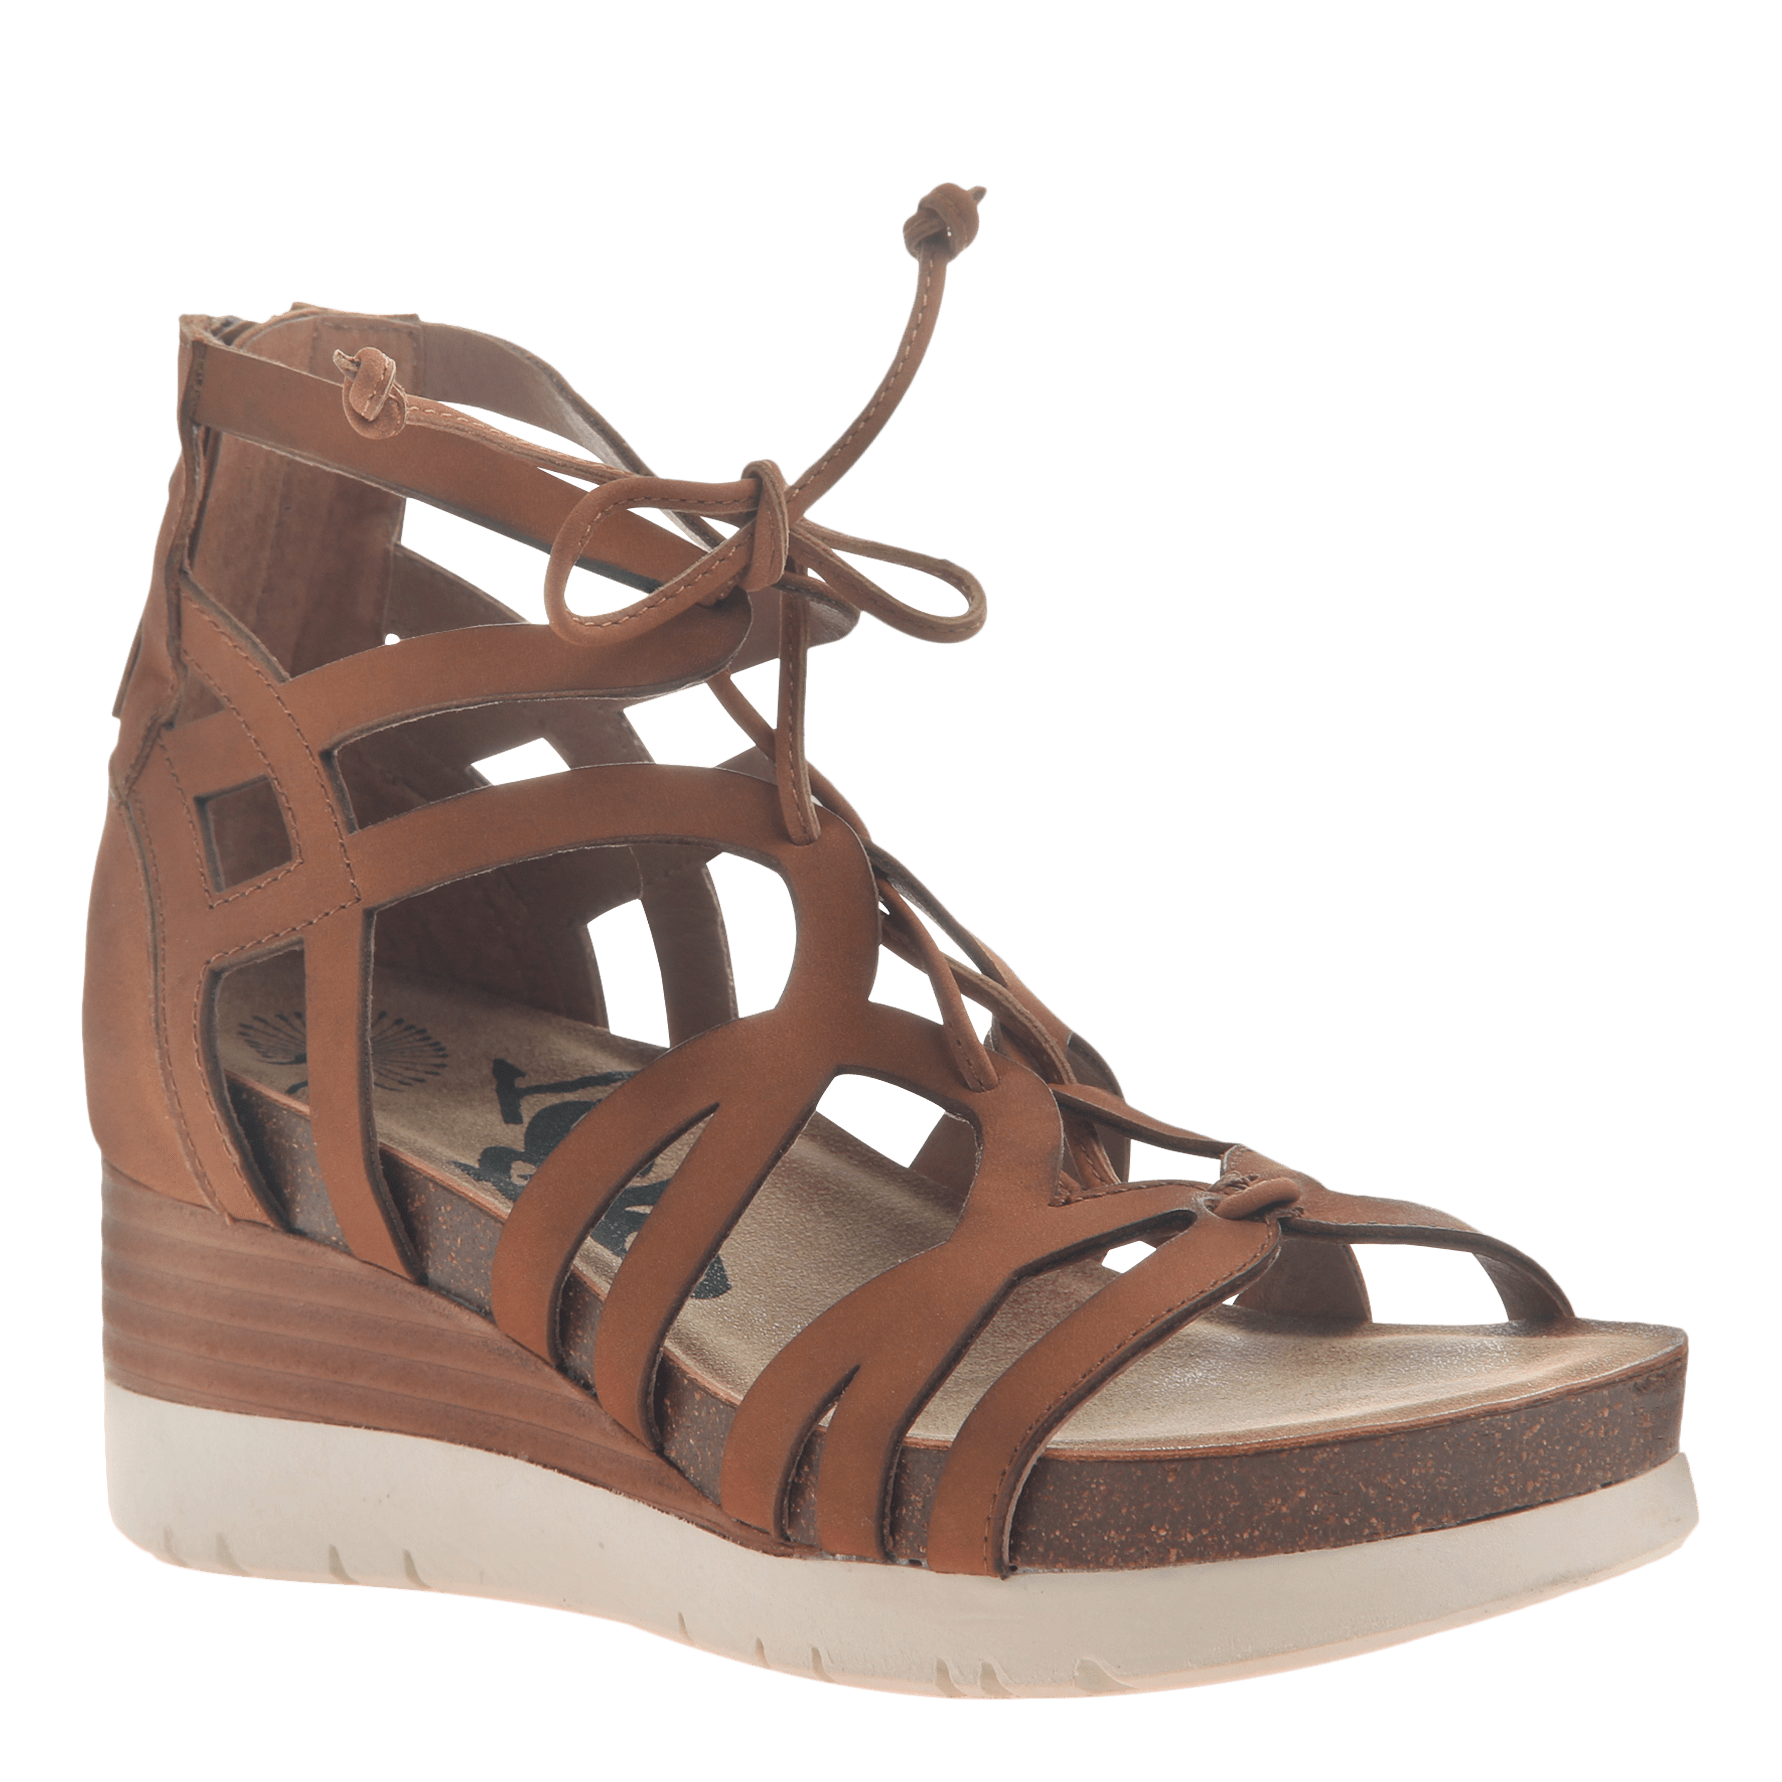 9eb7b8ed3 Escapade in Tan Wedge Sandals | Women's Shoes by OTBT